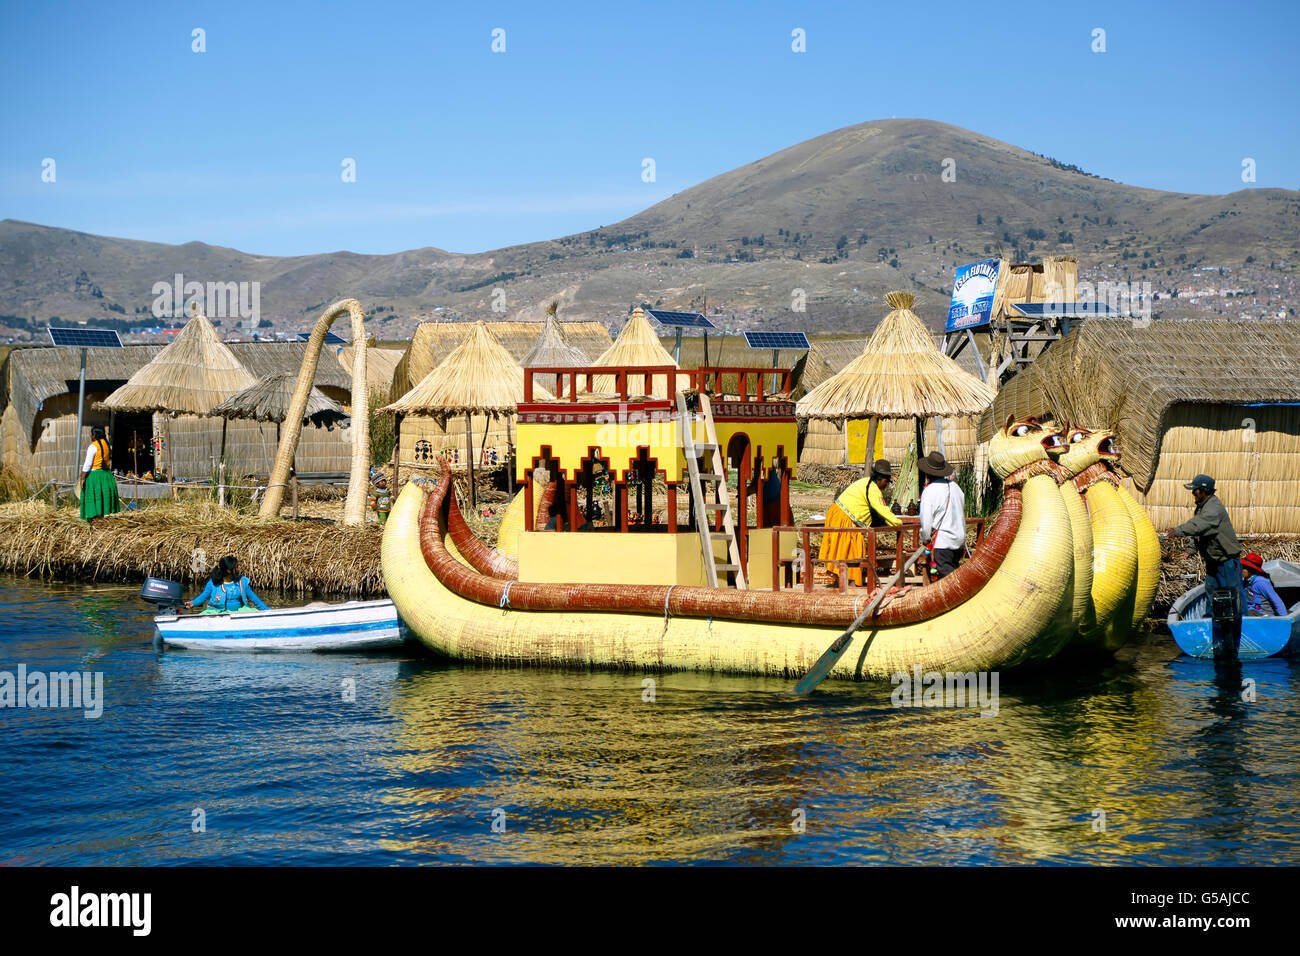 Yellow totora reed boat and houses on totora reed island, Uros Islands, Lake Titicaca, Puno, Peru - Stock Image